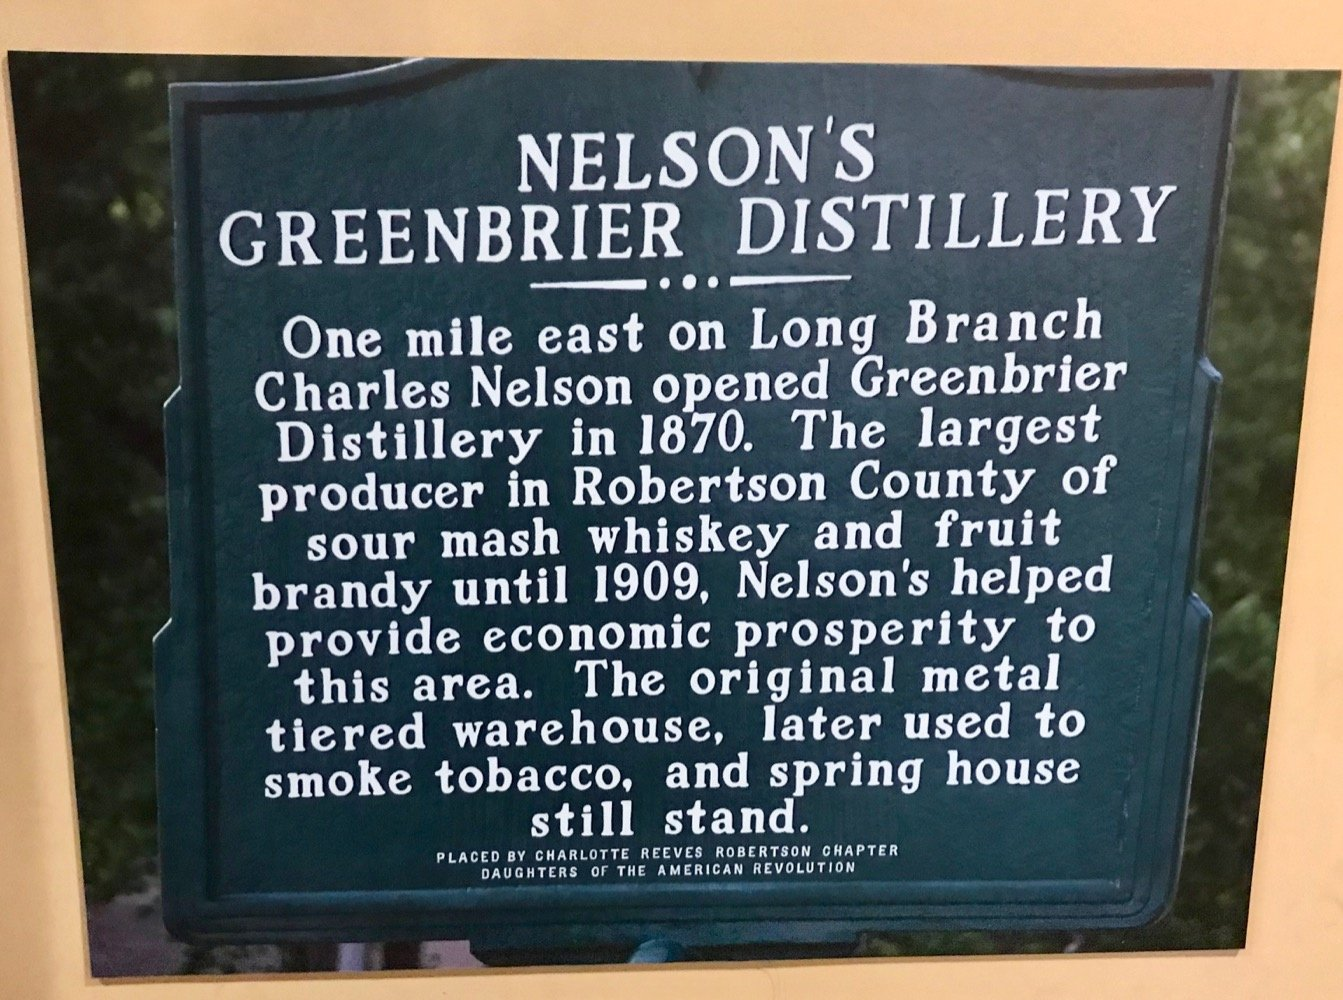 Nelson's Green Brier Distillery Historical Marker